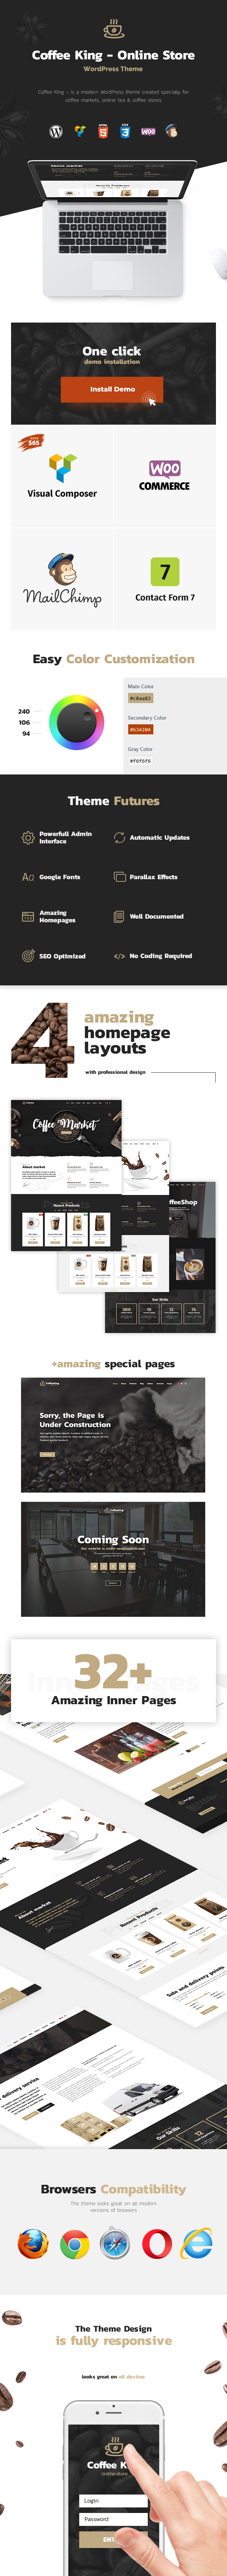 CoffeeKing - Coffee Shop & Drinks Online Store WordPress Theme - 3